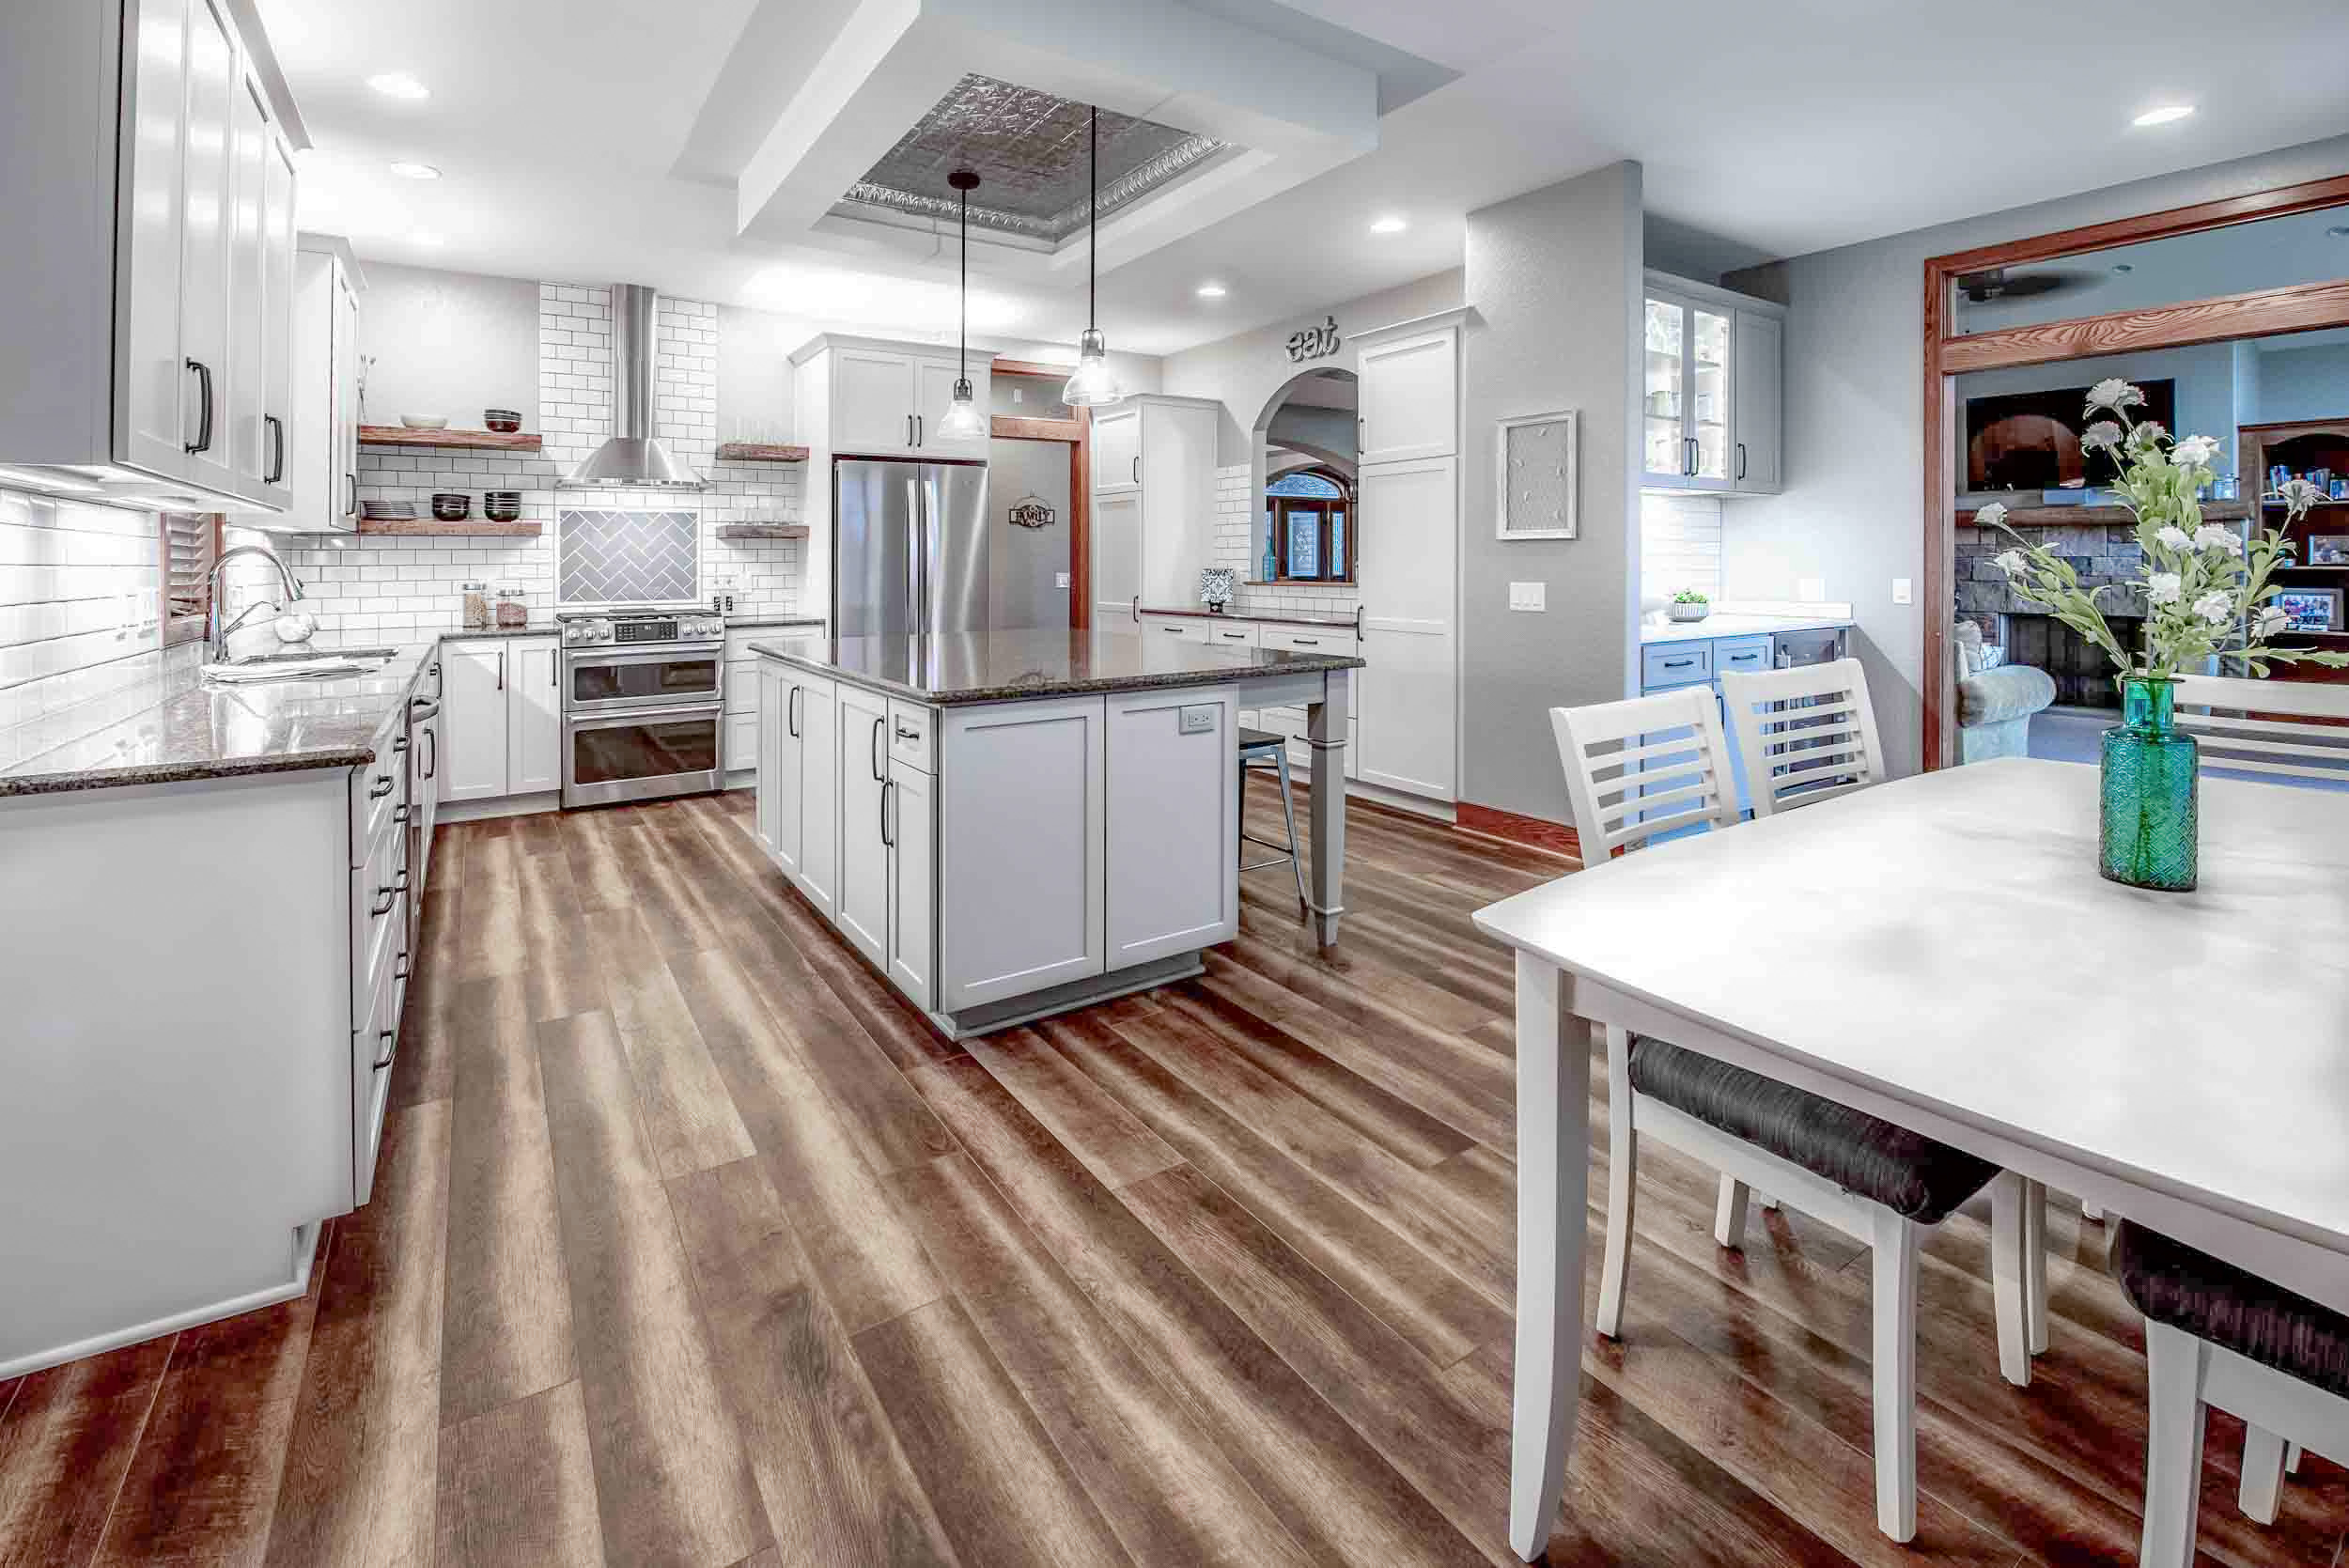 View Our Portfolio Of kitchen Remodeling Projects